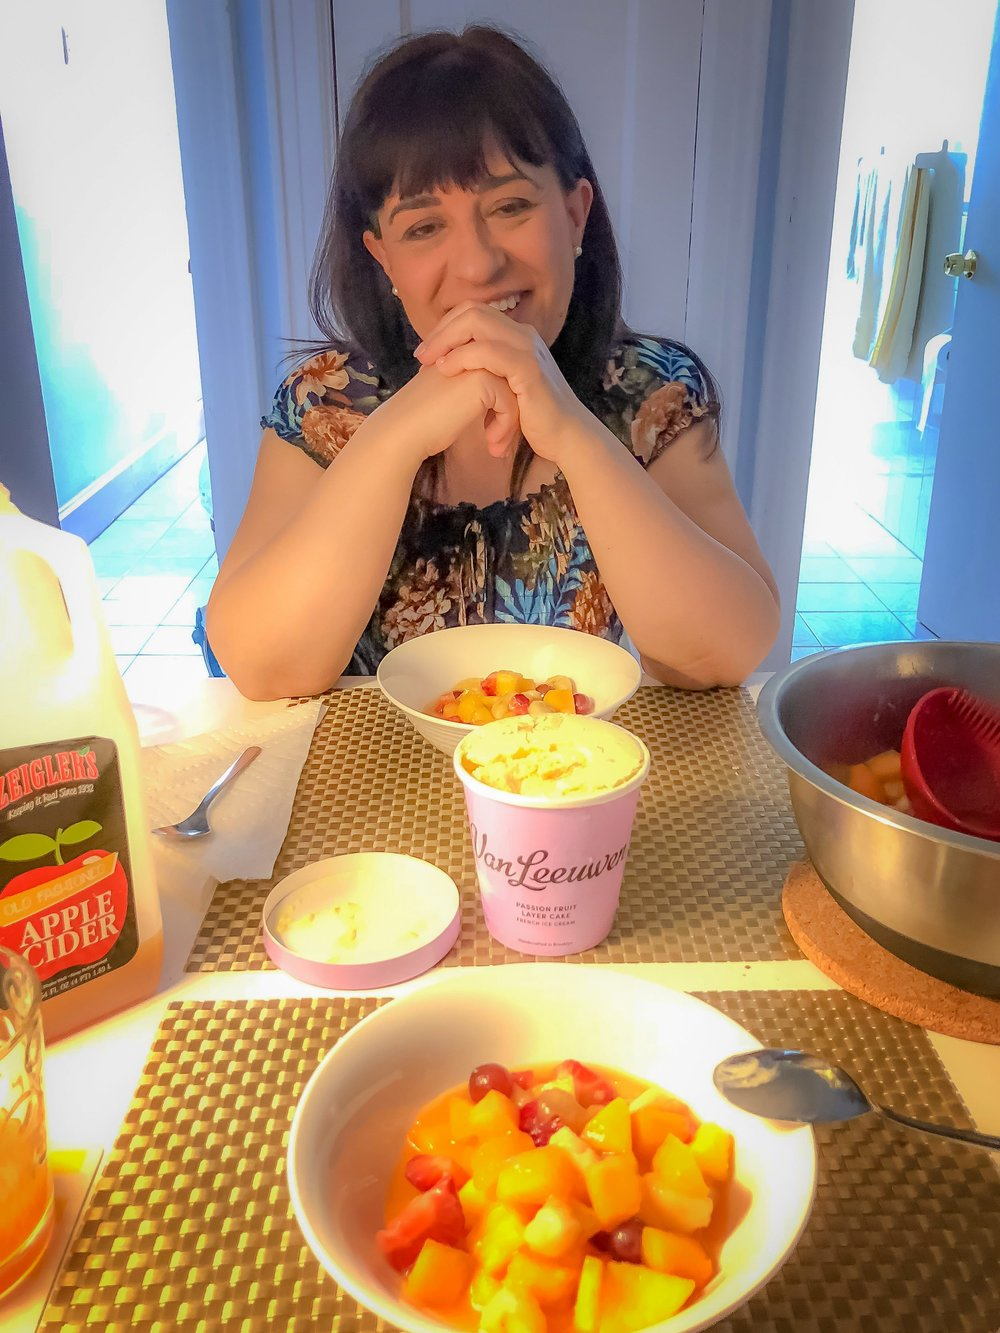 """homemade """"macedonia"""" with ice cream and upstate new york's apple cider: having lunch and dessert at home is always a great experience for those who love good comfort food."""